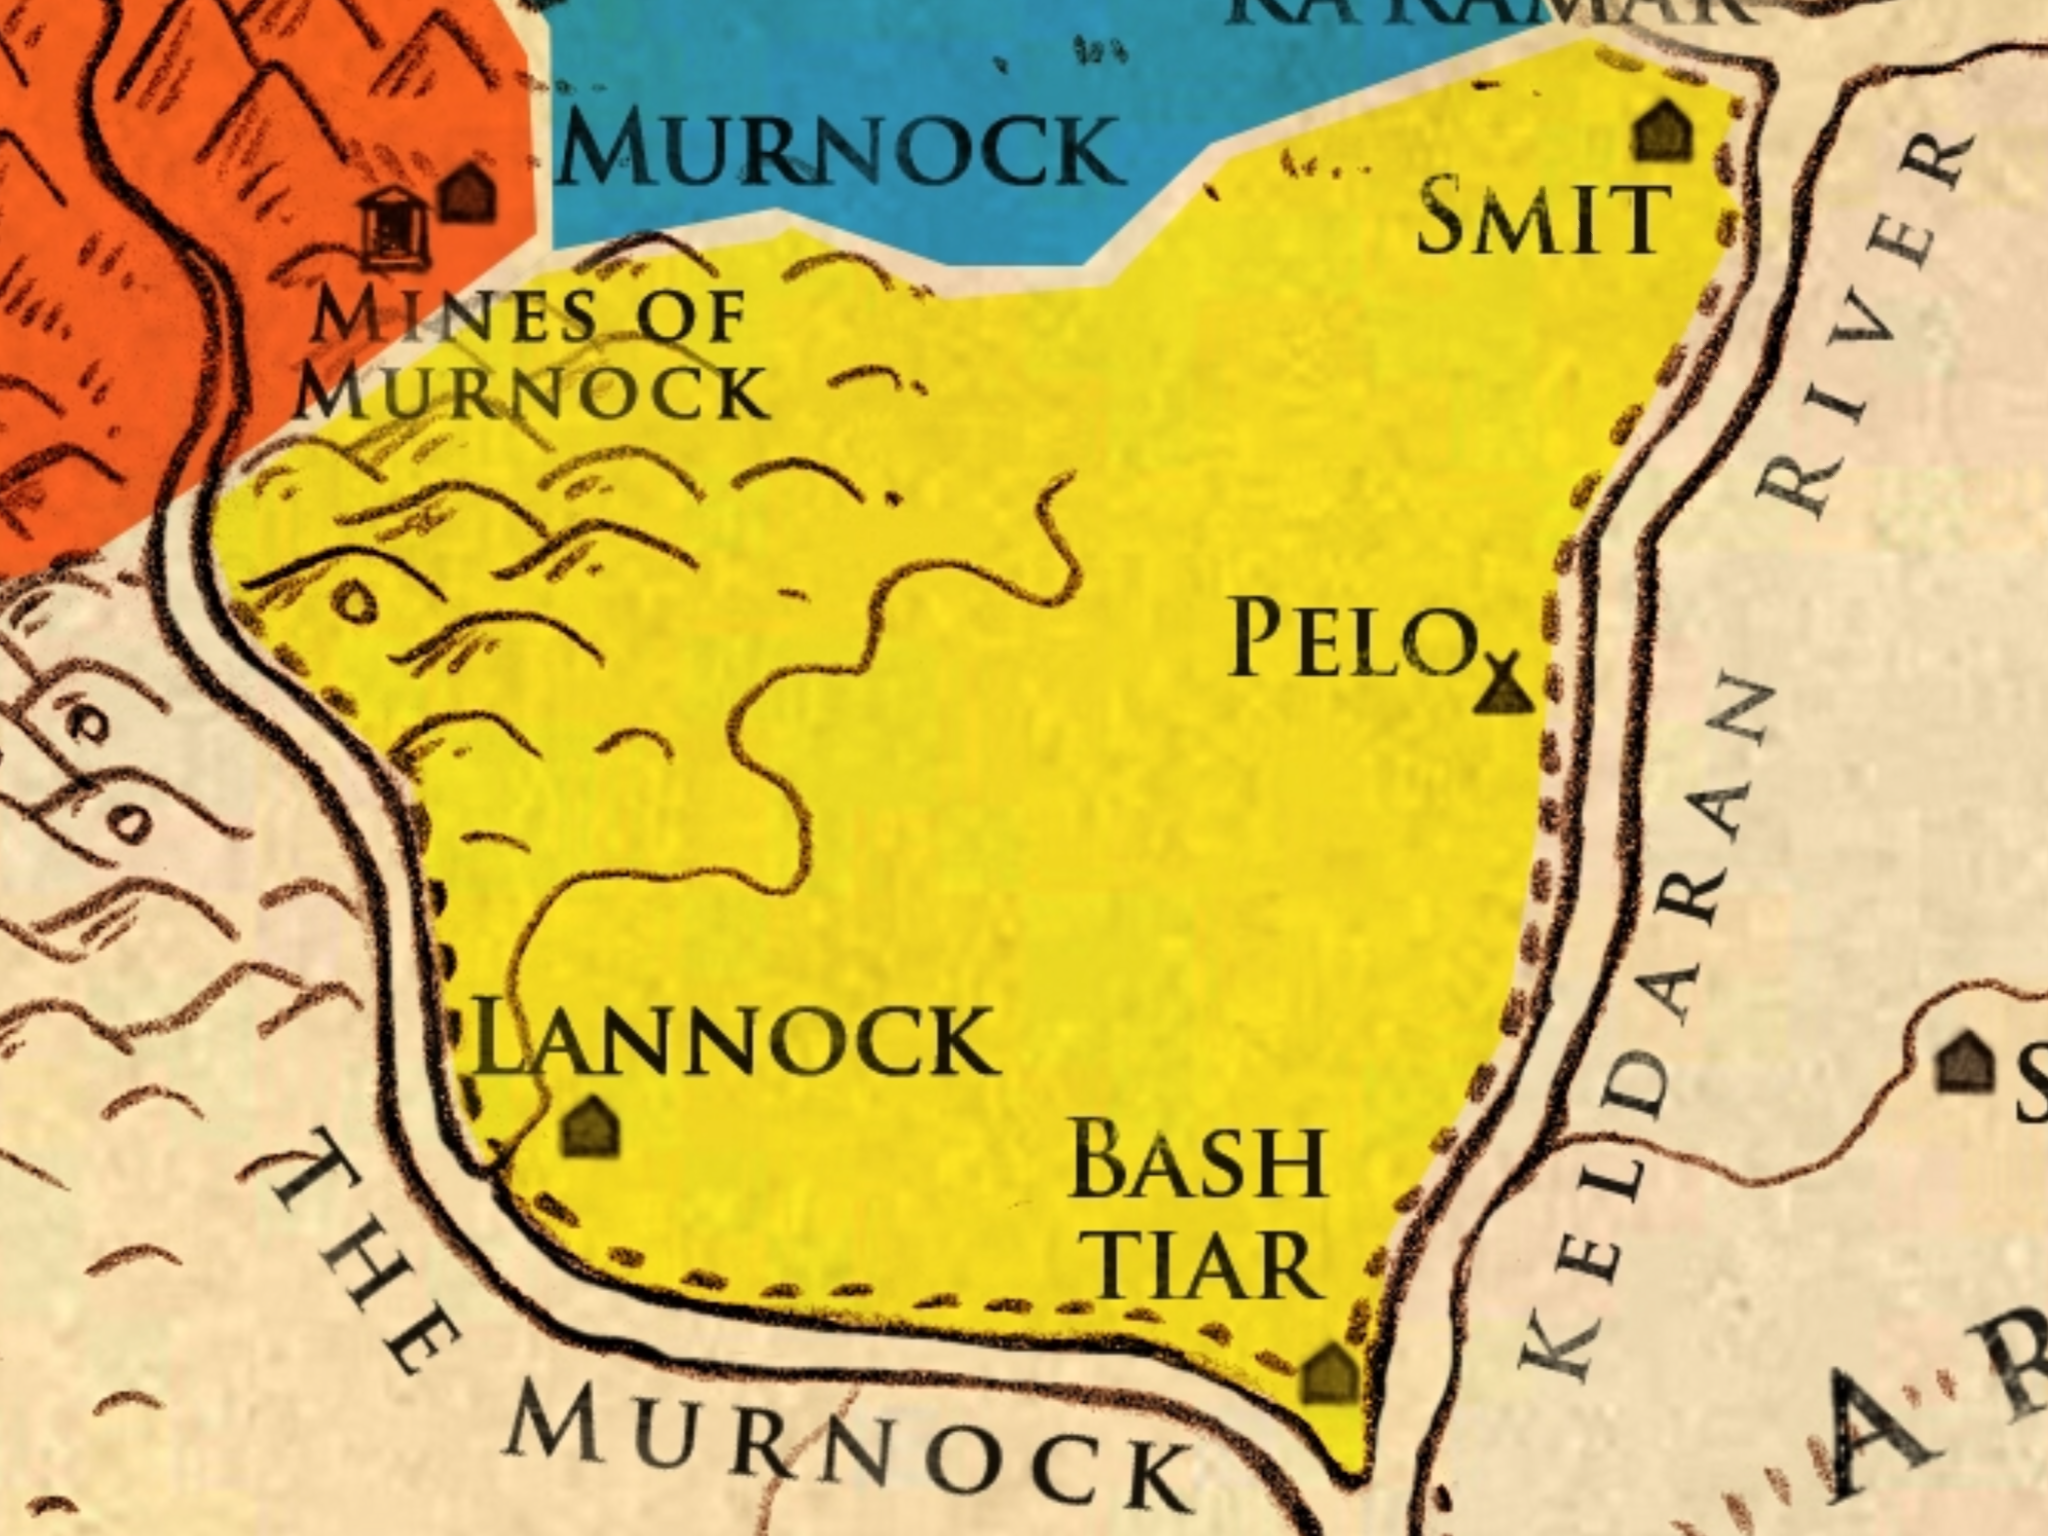 LANNOCK - Known For: As the southernmost region of Olaran, Lannock has seen much bloodshed since the unification of the Kingdom. Conflicts with Goltha and Arkadia have instilled in the people of this region a warrior spirit and a strong sense of national pride. They are the first line of defense against invasion and evidence of their combative nature can be seen in their culture and lifestyle.Key Households:House of the Duke of LannockTopography: A mix between the foothills of the Fire Mountains and fertile grasslands along the river Murnock and Keldaran RiverEconomy: Metalwork (due to their proximity to the Mines of Murnock), Farming, LivestockMajor Cities:Lannock - The capital of the region of Lannock and the seat of the Duke of Lannock. A well fortified city with a strong position on the Murnock River, it works as a defensive location for locals as well as a trade town for the rest of the region.Other Cities:Pelo - One of the trading towns along the Keldaran River.Bash Tiar - A strongly fortified city and a bastion of defense for all trade routes leading by river into Olaran. Known for its great fortress.Smit - Known as the Southern Gateway, Smit is the largest trading stop on the southern Keldaran River and is the sister city of Delcour in the north.Locations of Note:The Fortress of Bash Tiar - One of the strongest defensive structures in all of Olaran, this fortress is the primary location for the housing and training of the army and the command center for the Hearth Guard.